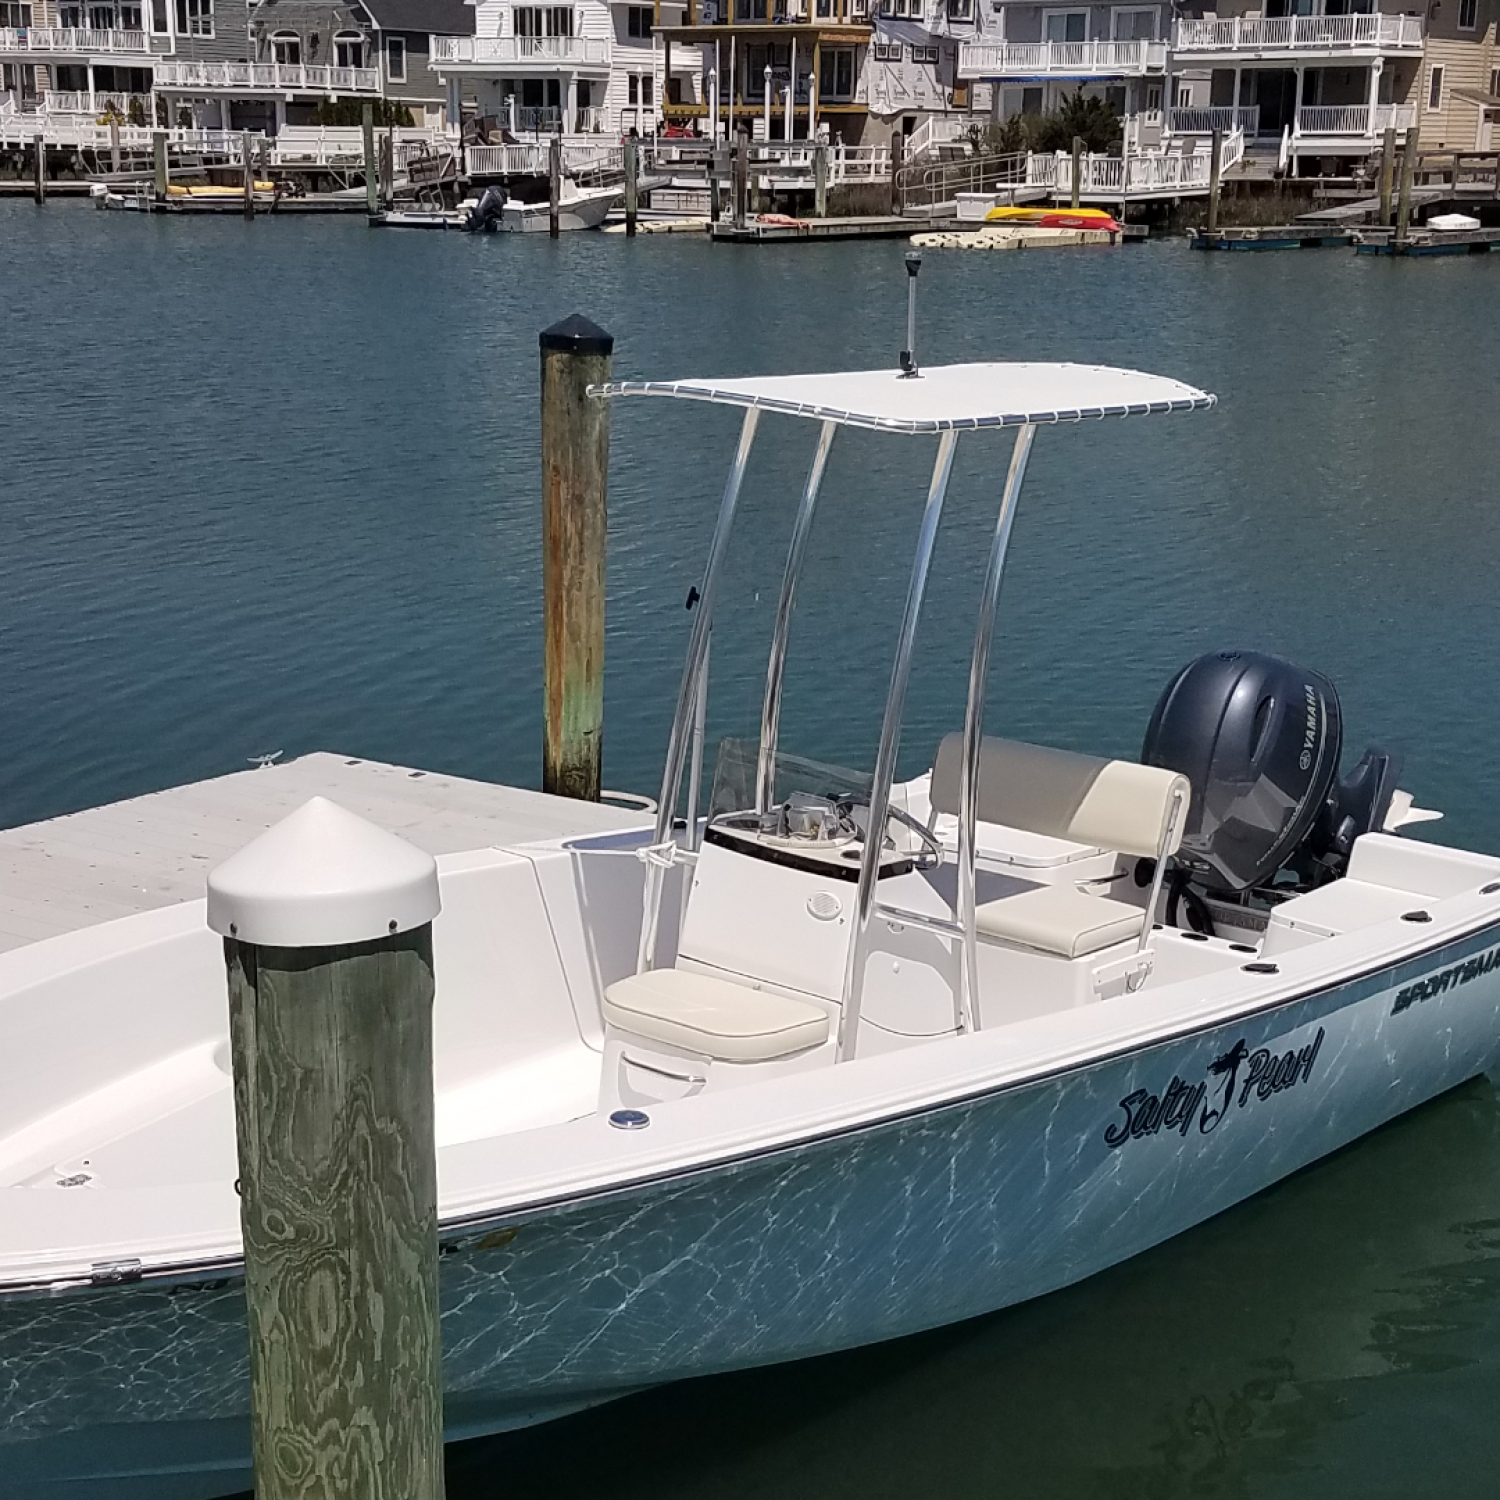 Title: Salty Pearl - On board their Sportsman Island Reef 19 Center Console - Location: Lebanon, Pennsylvania. Participating in the Photo Contest #SportsmanJune2017